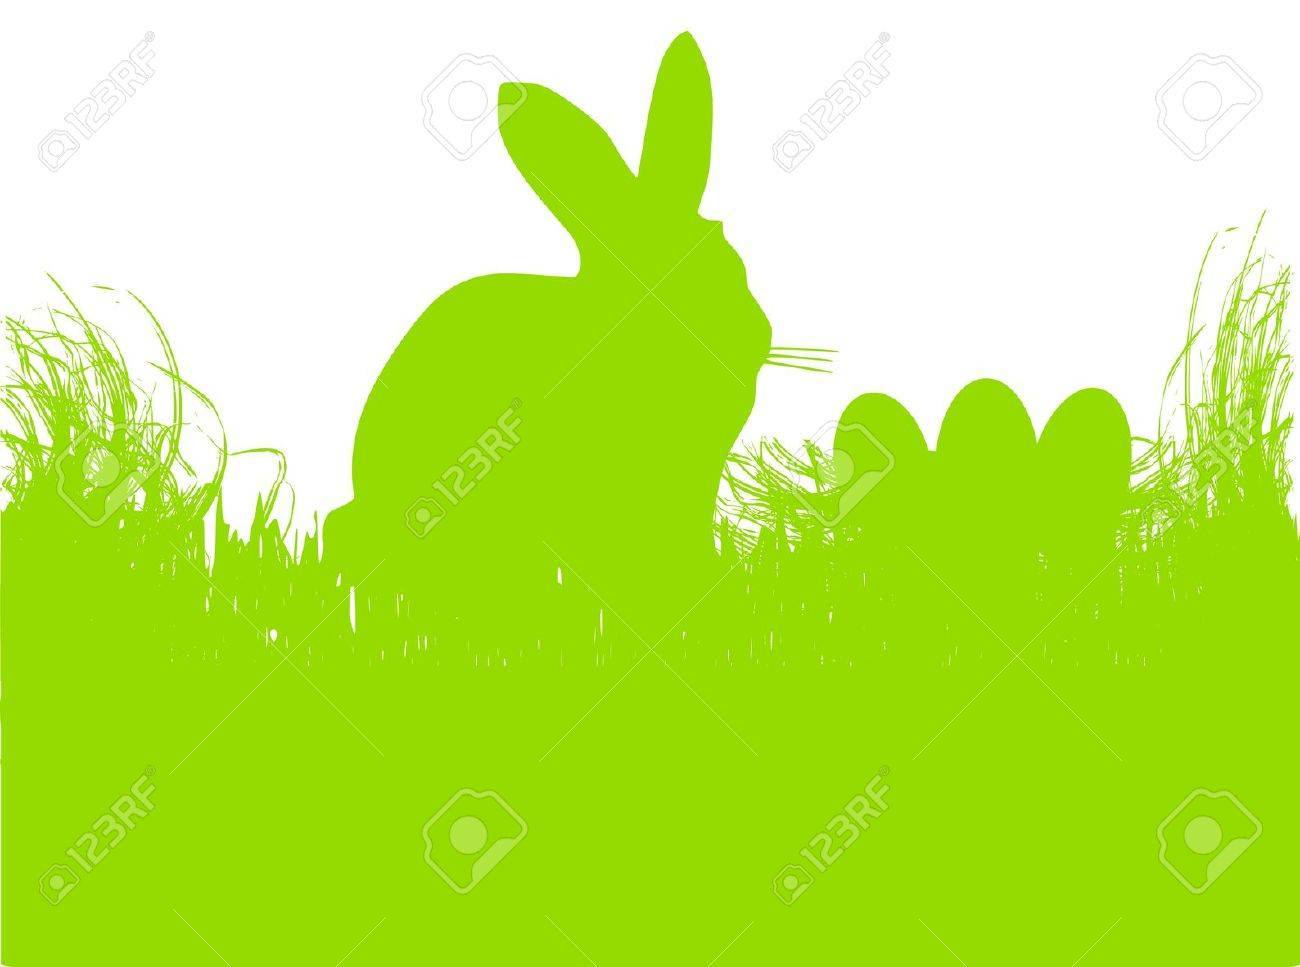 171 free easter bunny stock vector illustration and royalty free